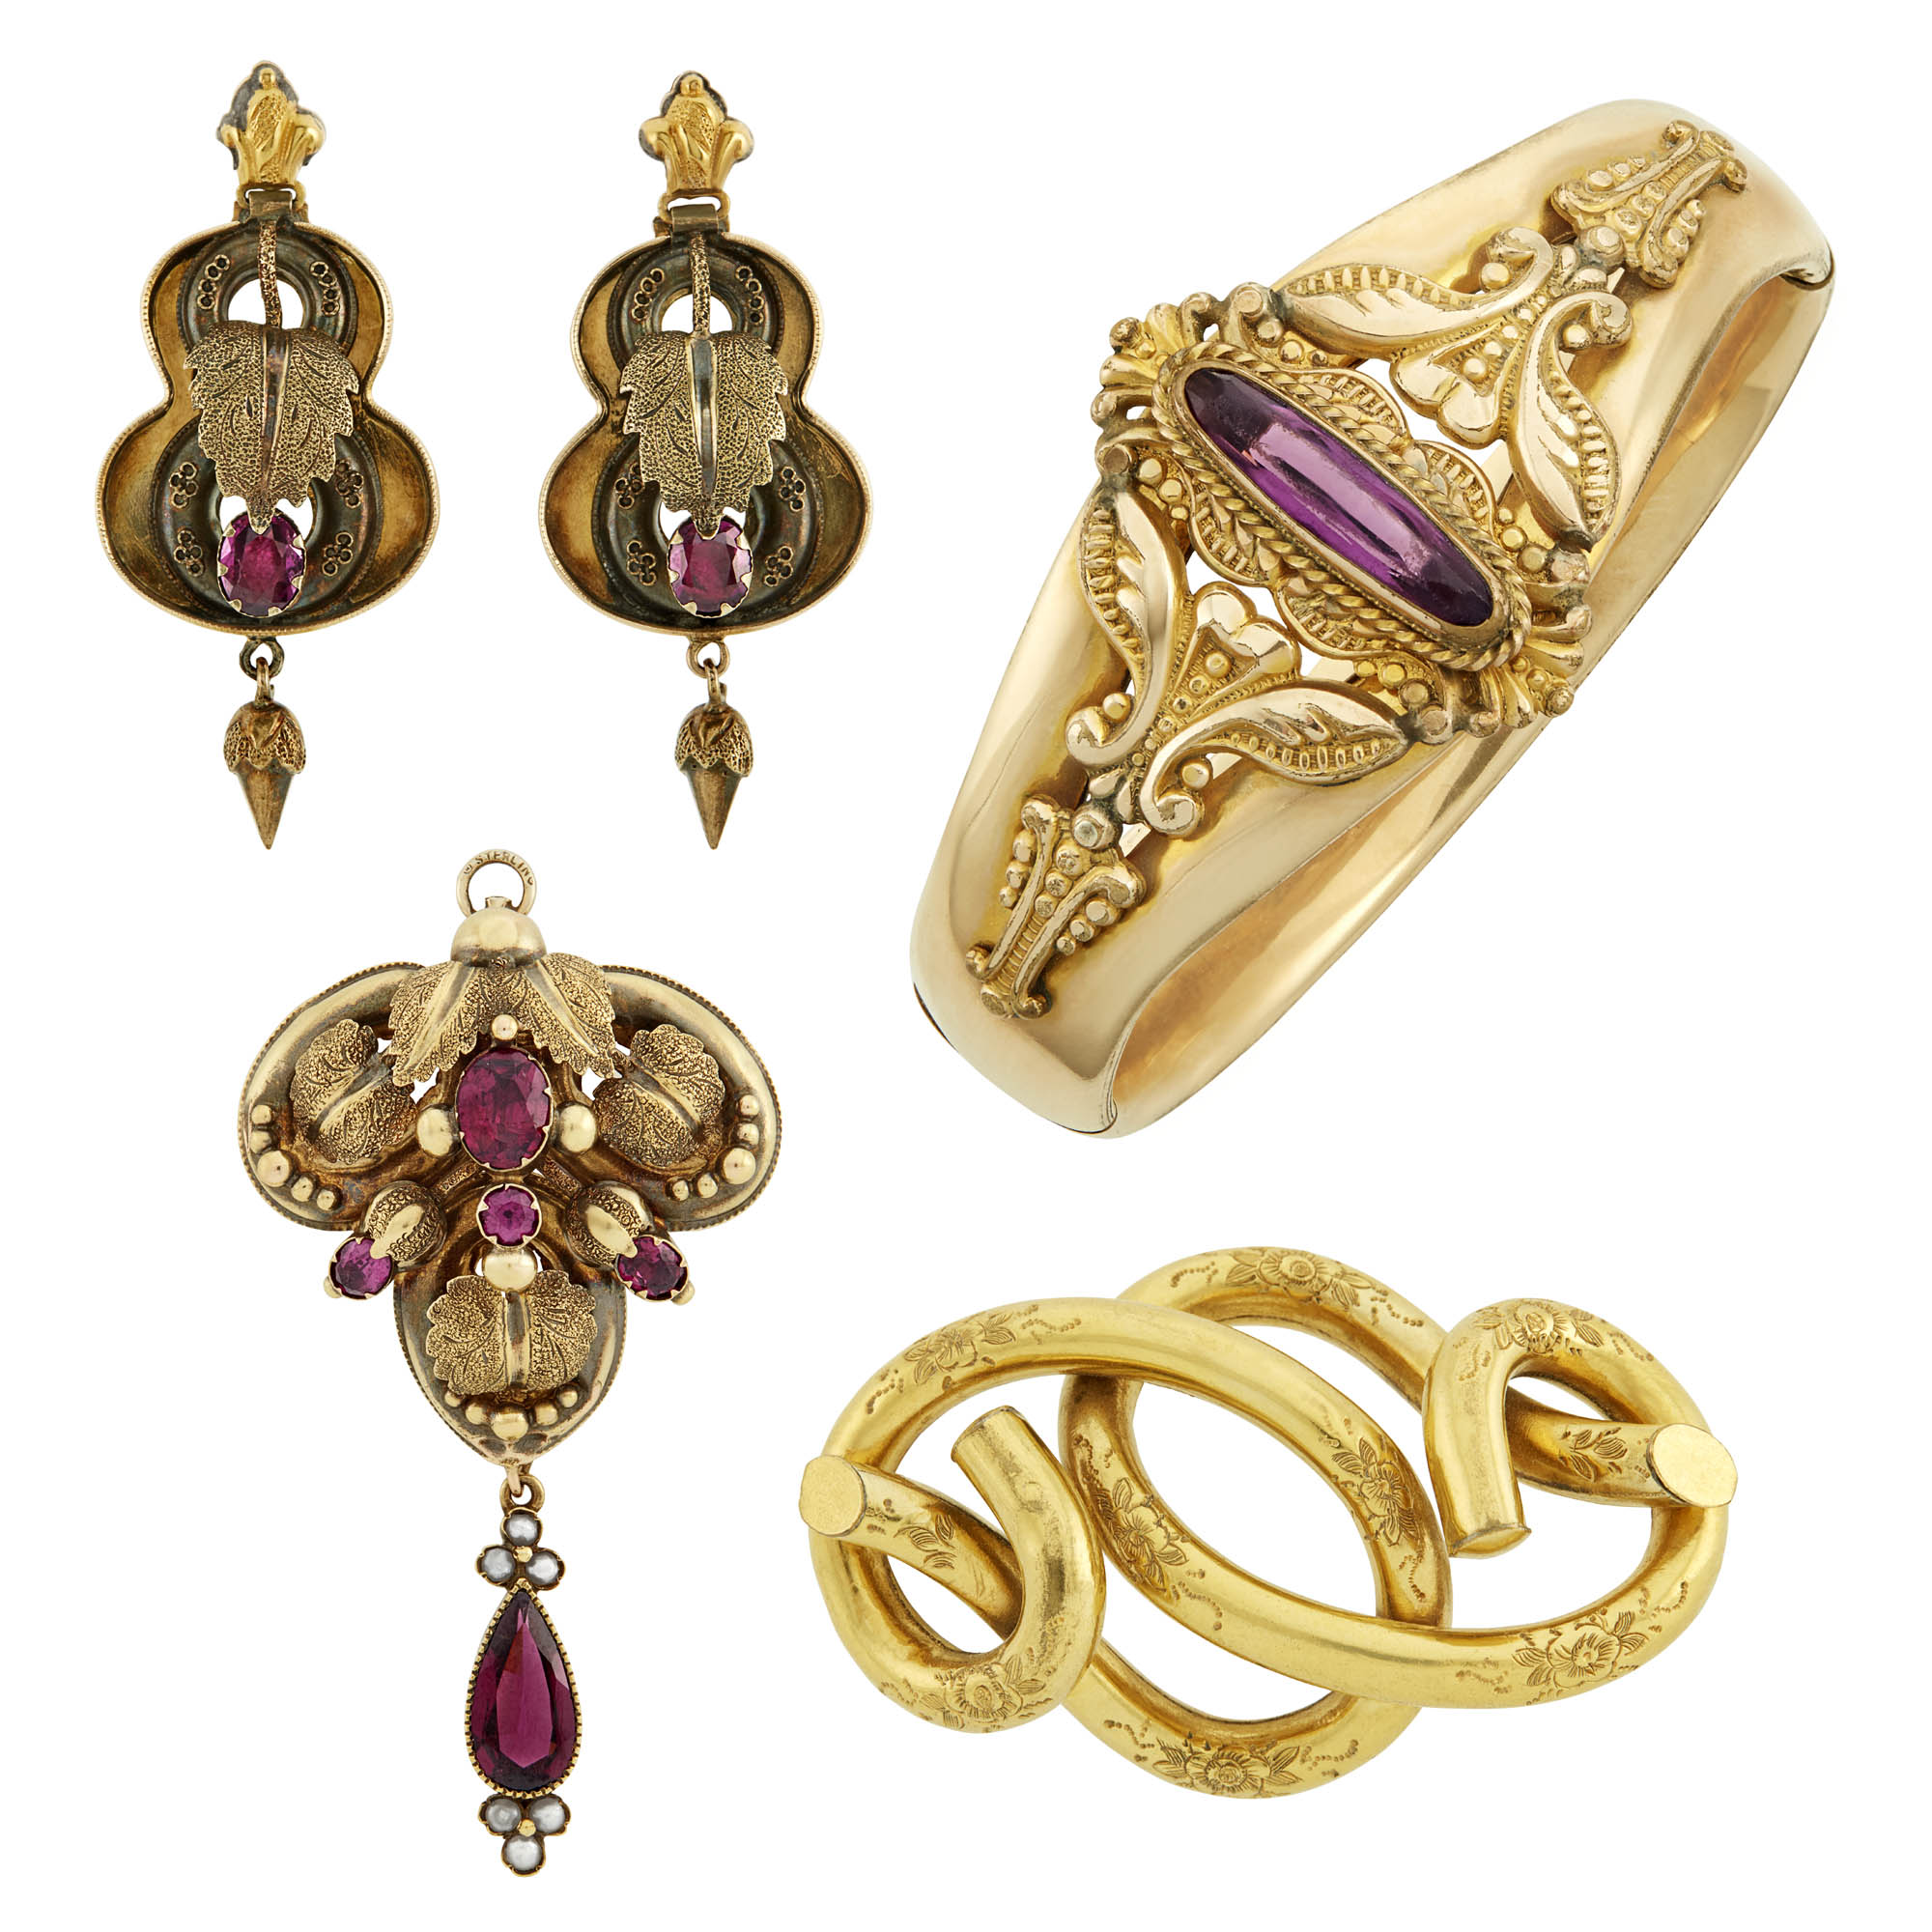 Lot image - Antique Gold, Gold-Plated and Gem-Set Jewelry